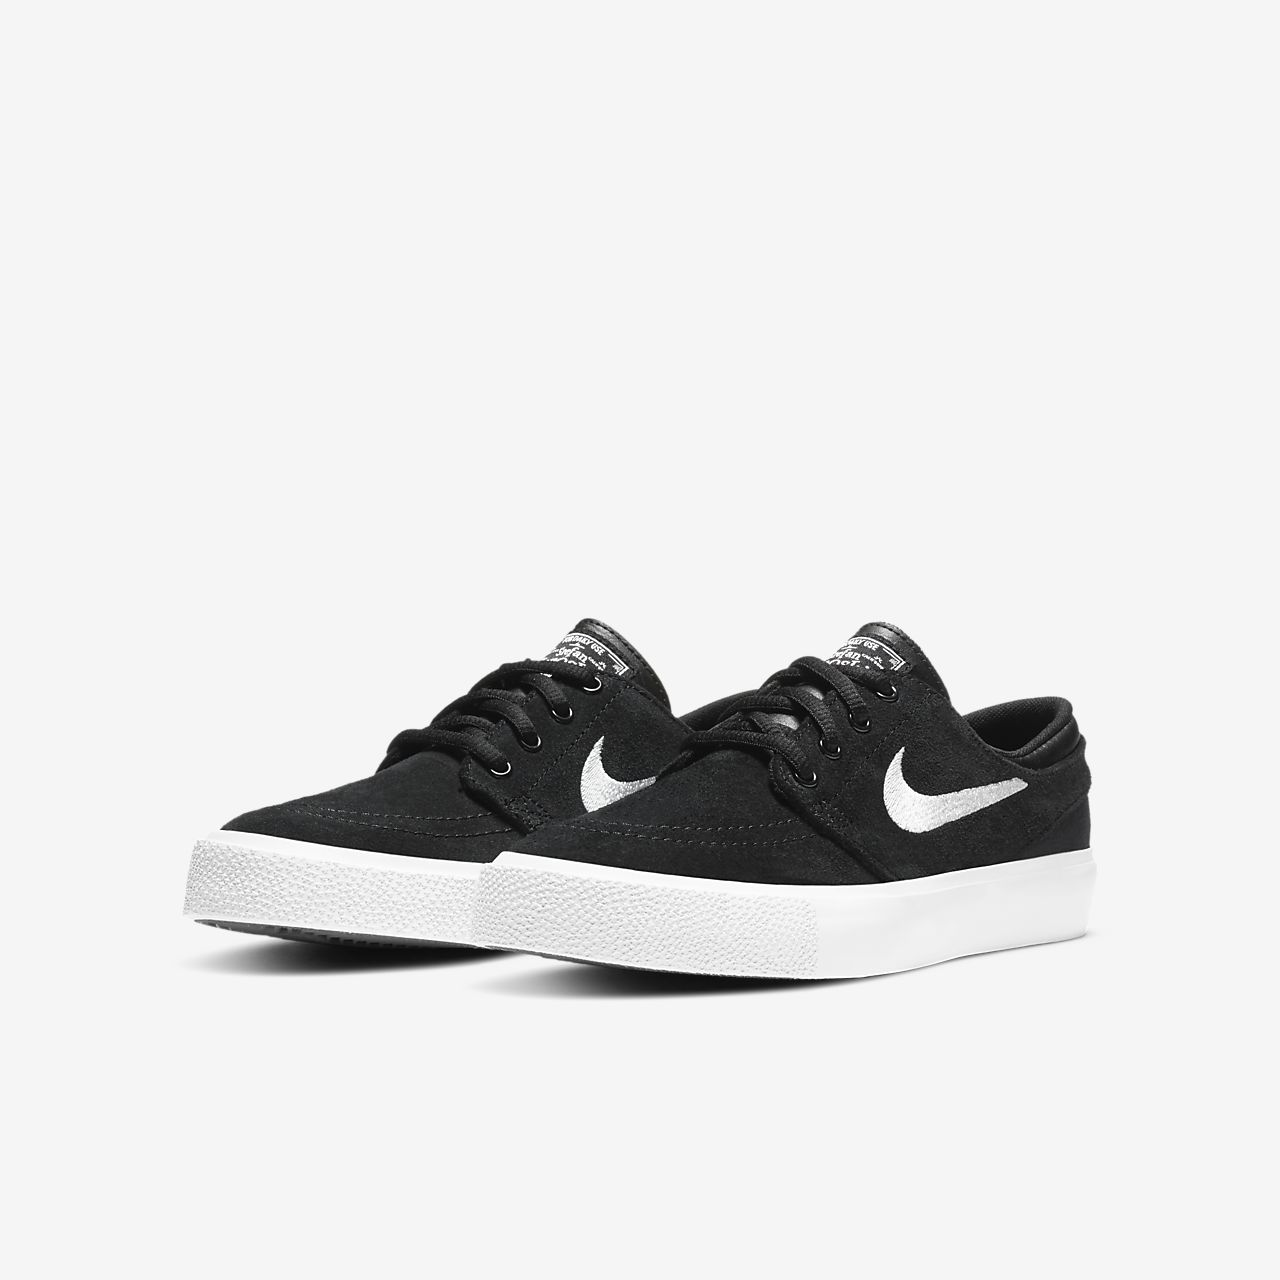 big sale 5156d 7b8f3 ... Nike Zoom Stefan Janoski Older Kids Skateboarding Shoe